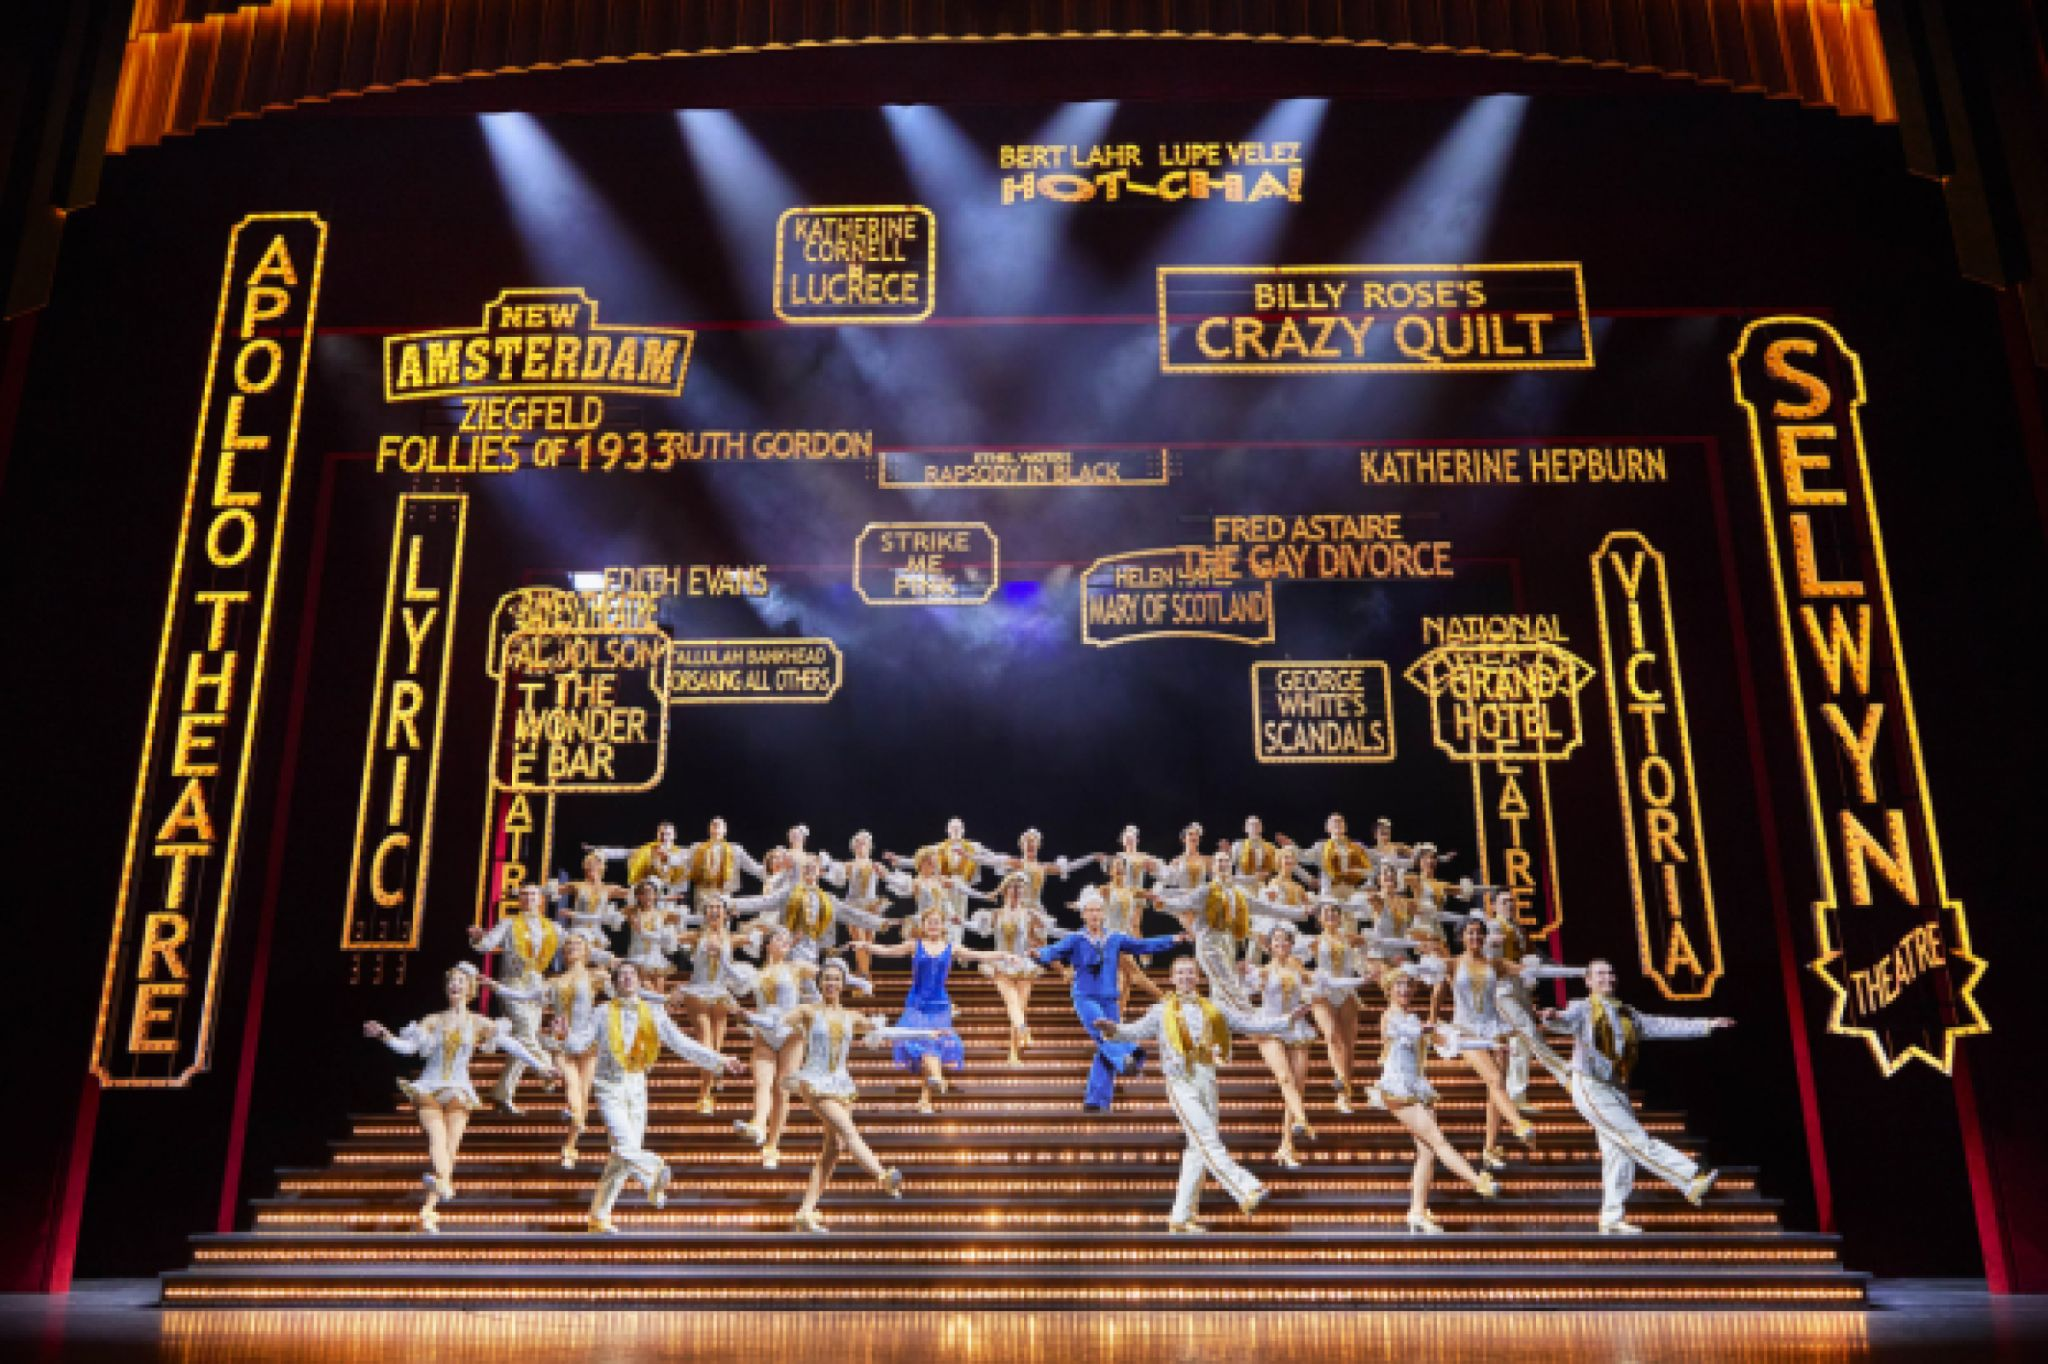 The 50 strong company of 42nd Street in London performs a dance number on a set of stairs that fill the stage